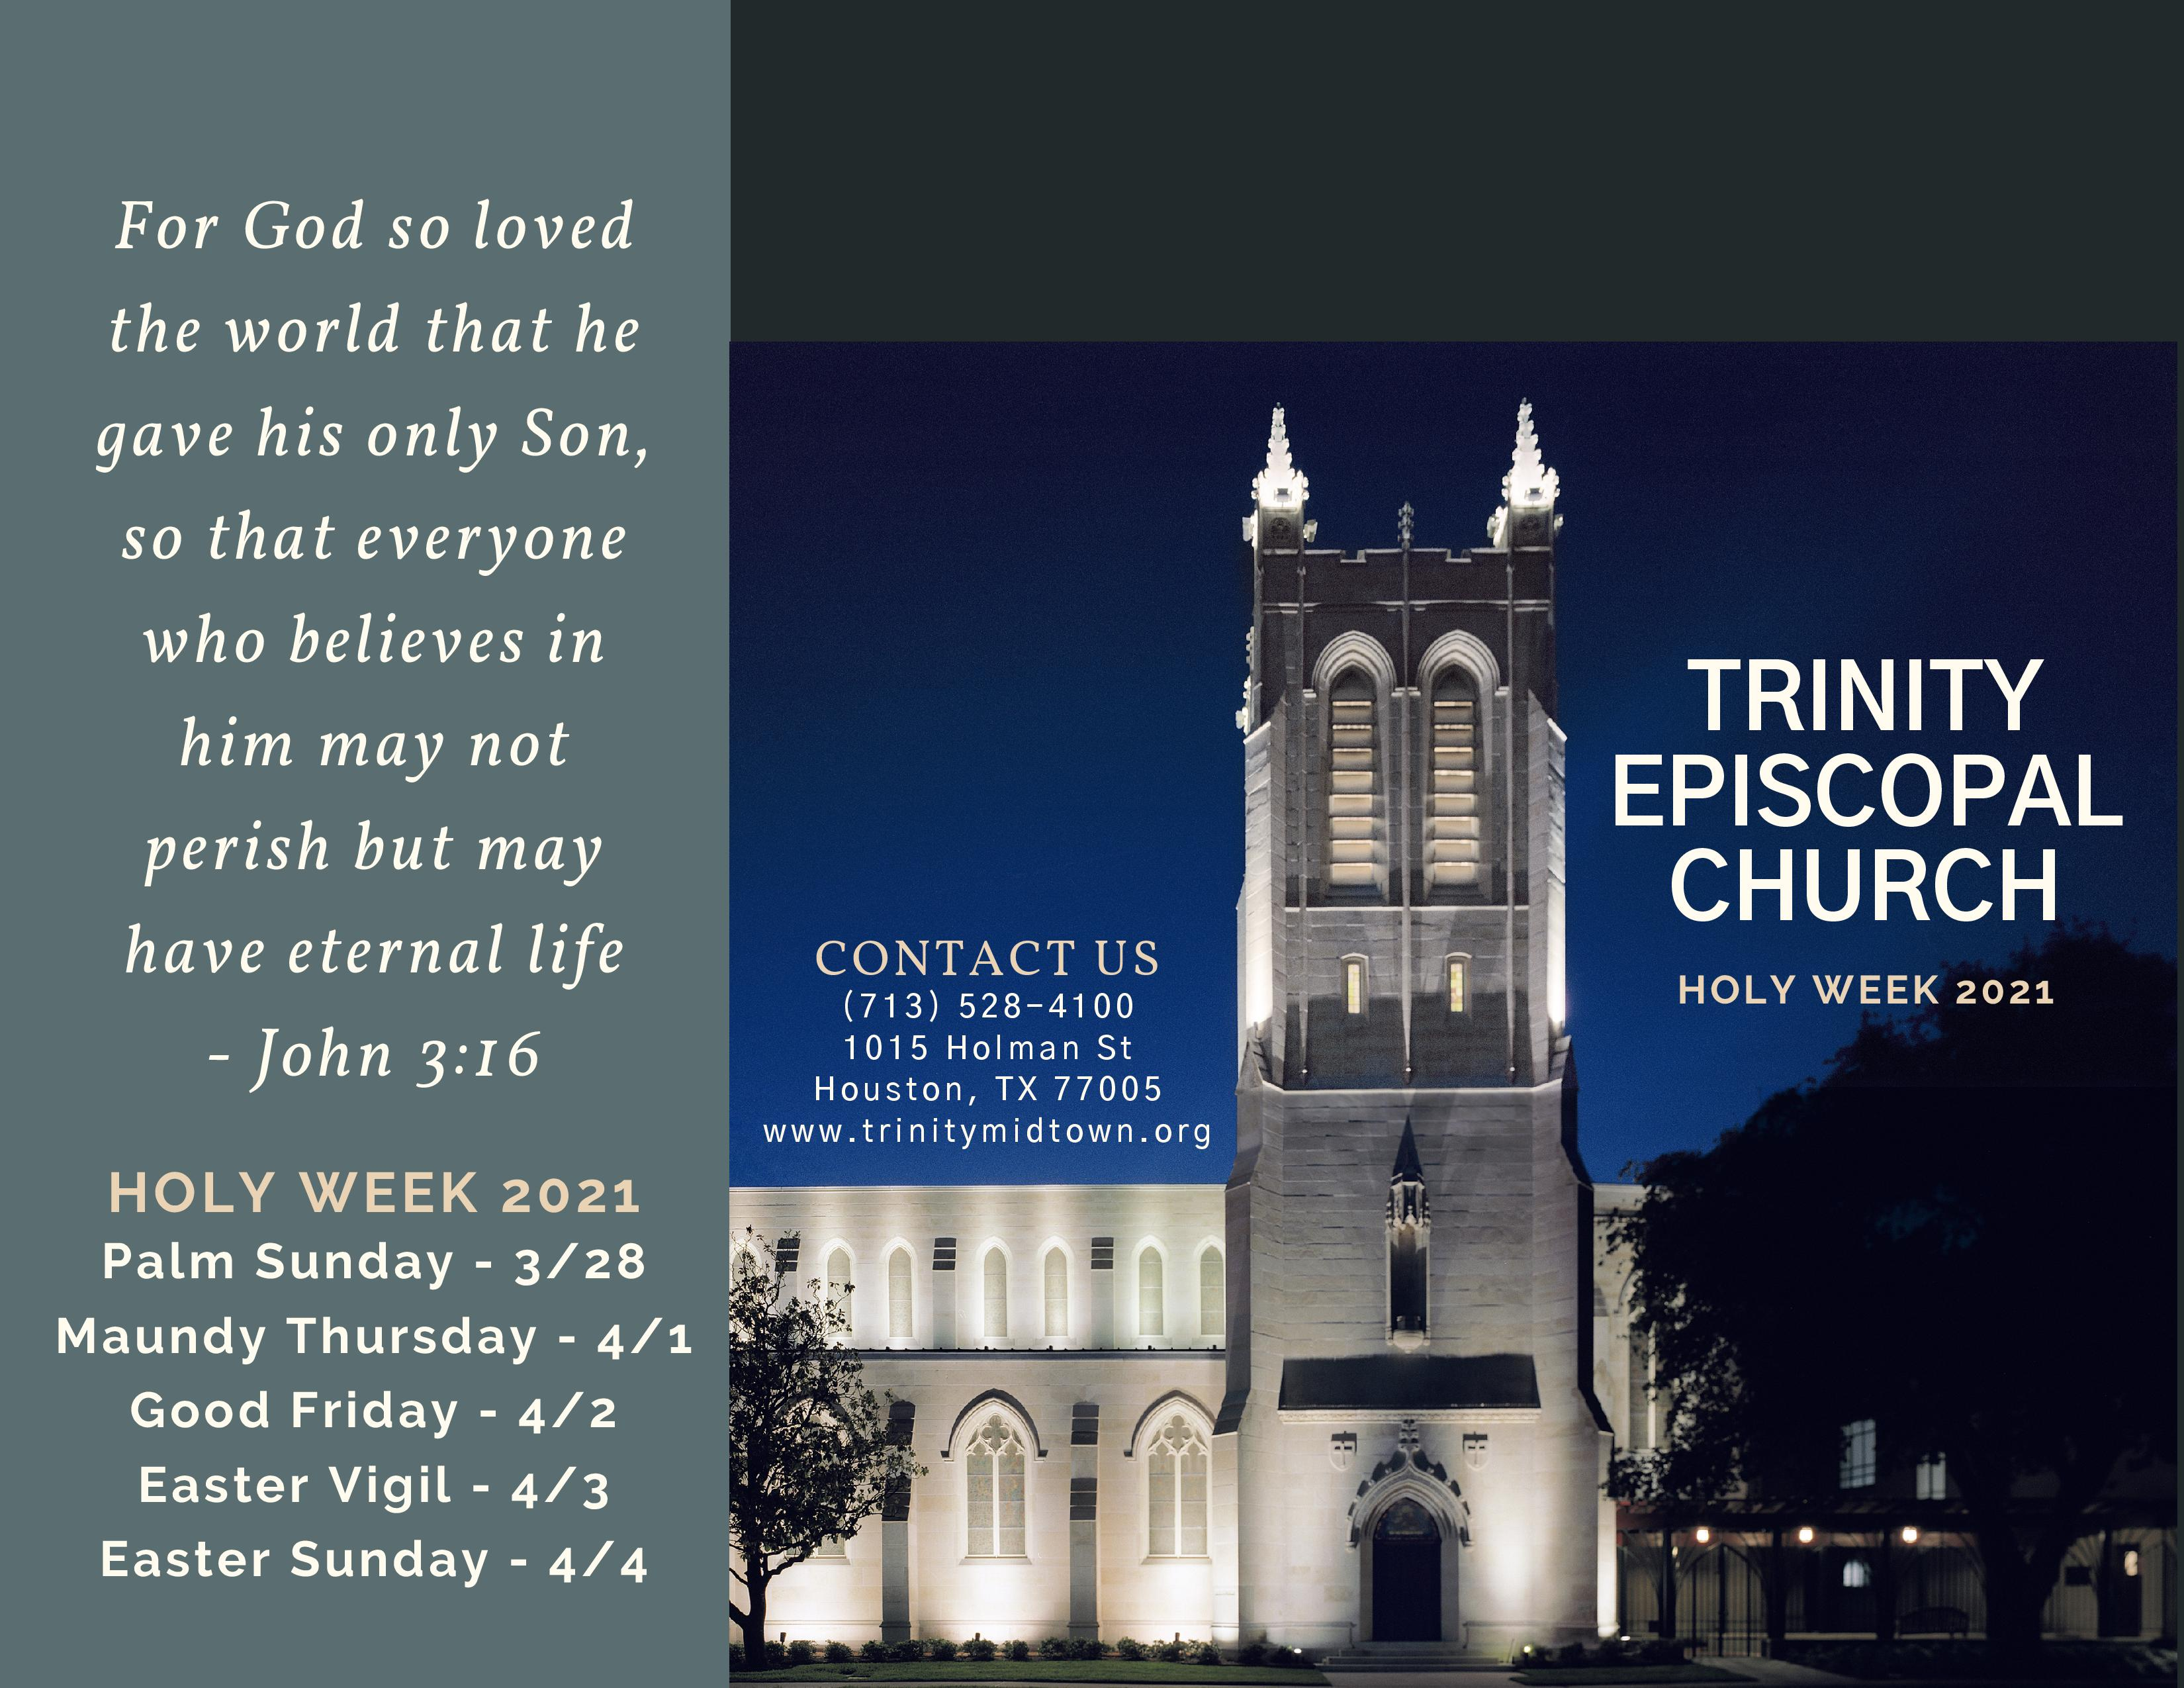 holy-week-2021-trifold-1-page-001_405